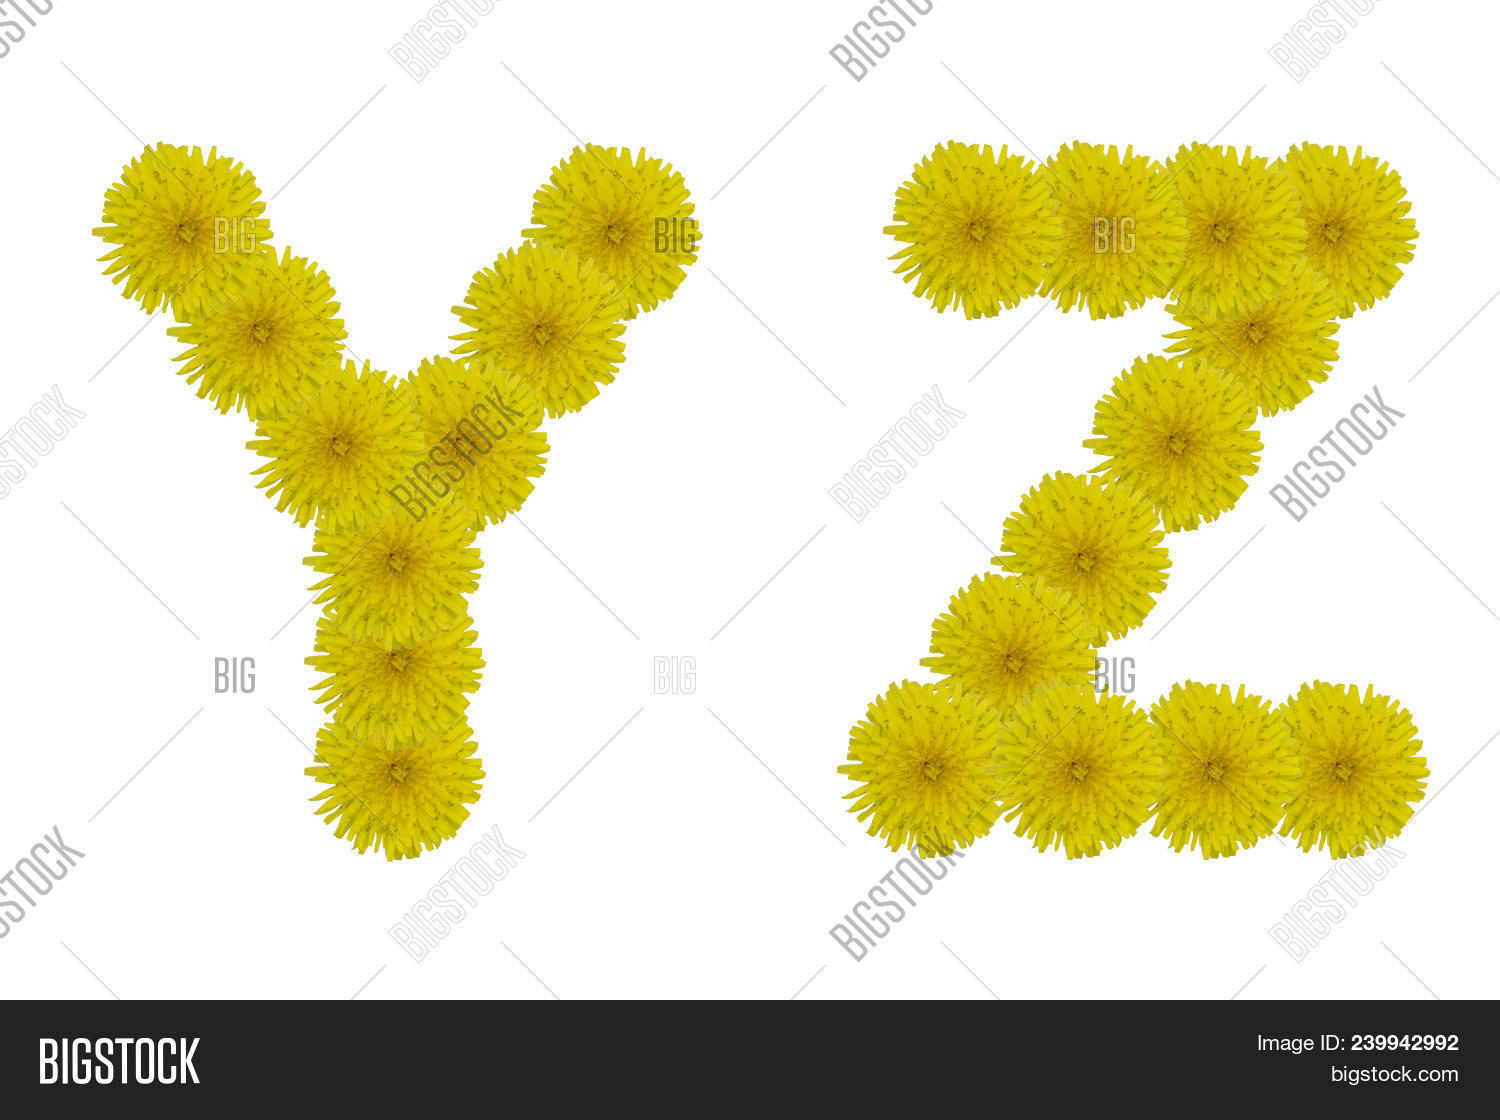 Floral Letters Y Z Image Photo Free Trial Bigstock